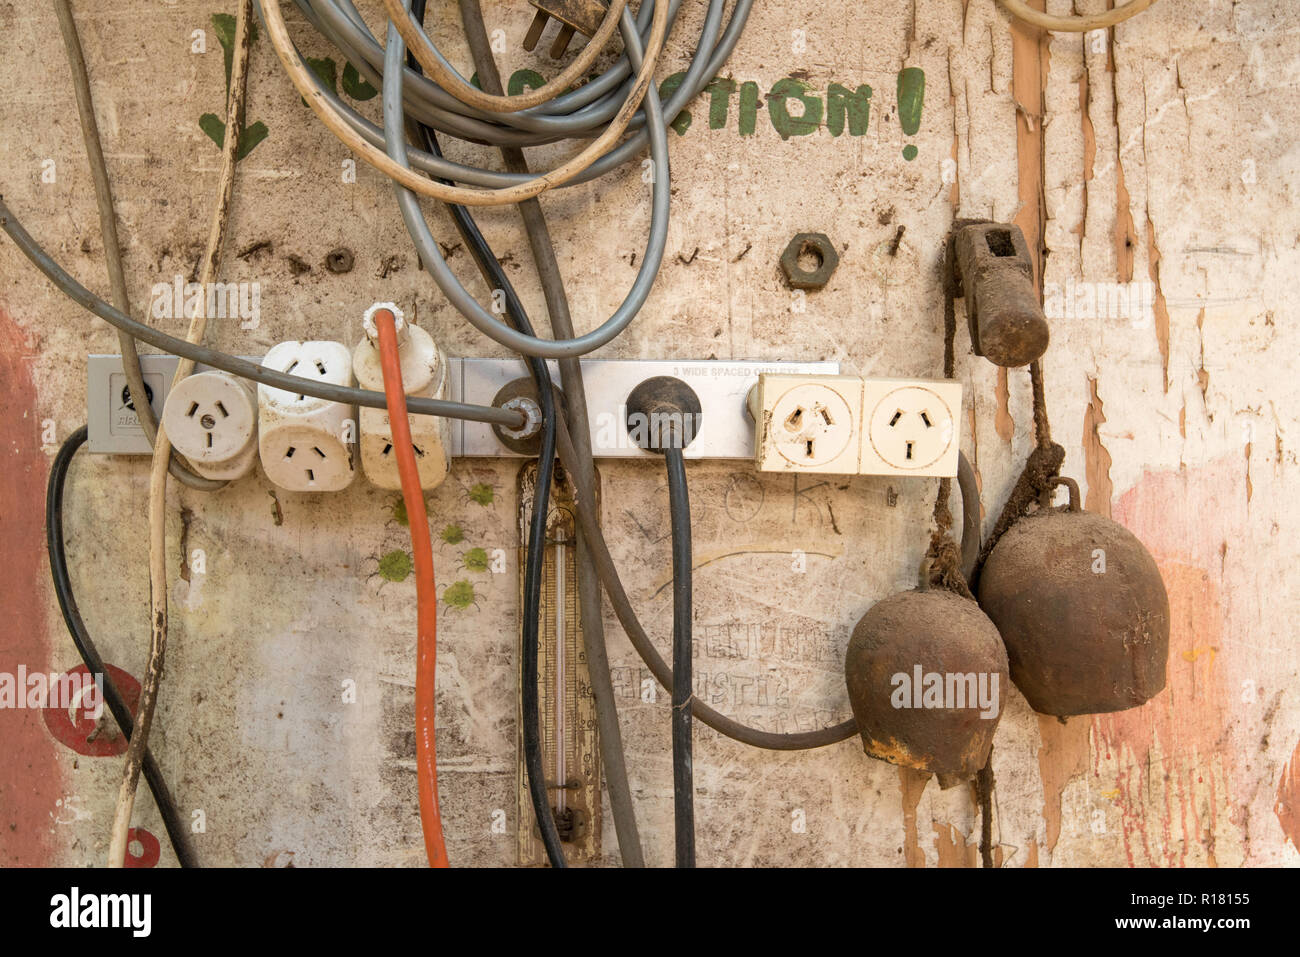 hight resolution of an australian electrical power board with multiple plugs and leads attached and hanging on a wall